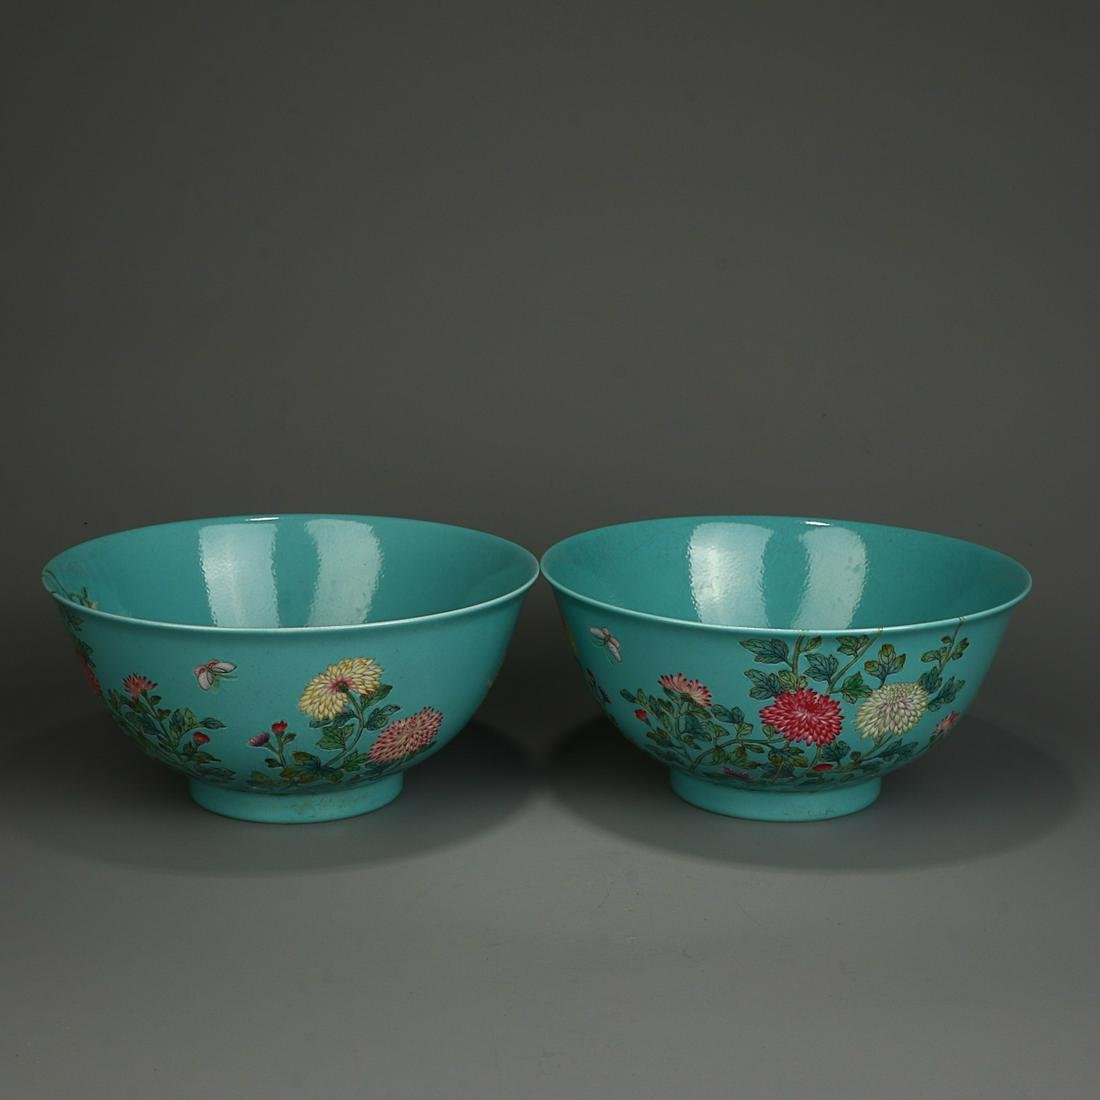 PAIR OF GREEN GROUND FAMILLE ROSE 'FLORAL' BOWLS, QING